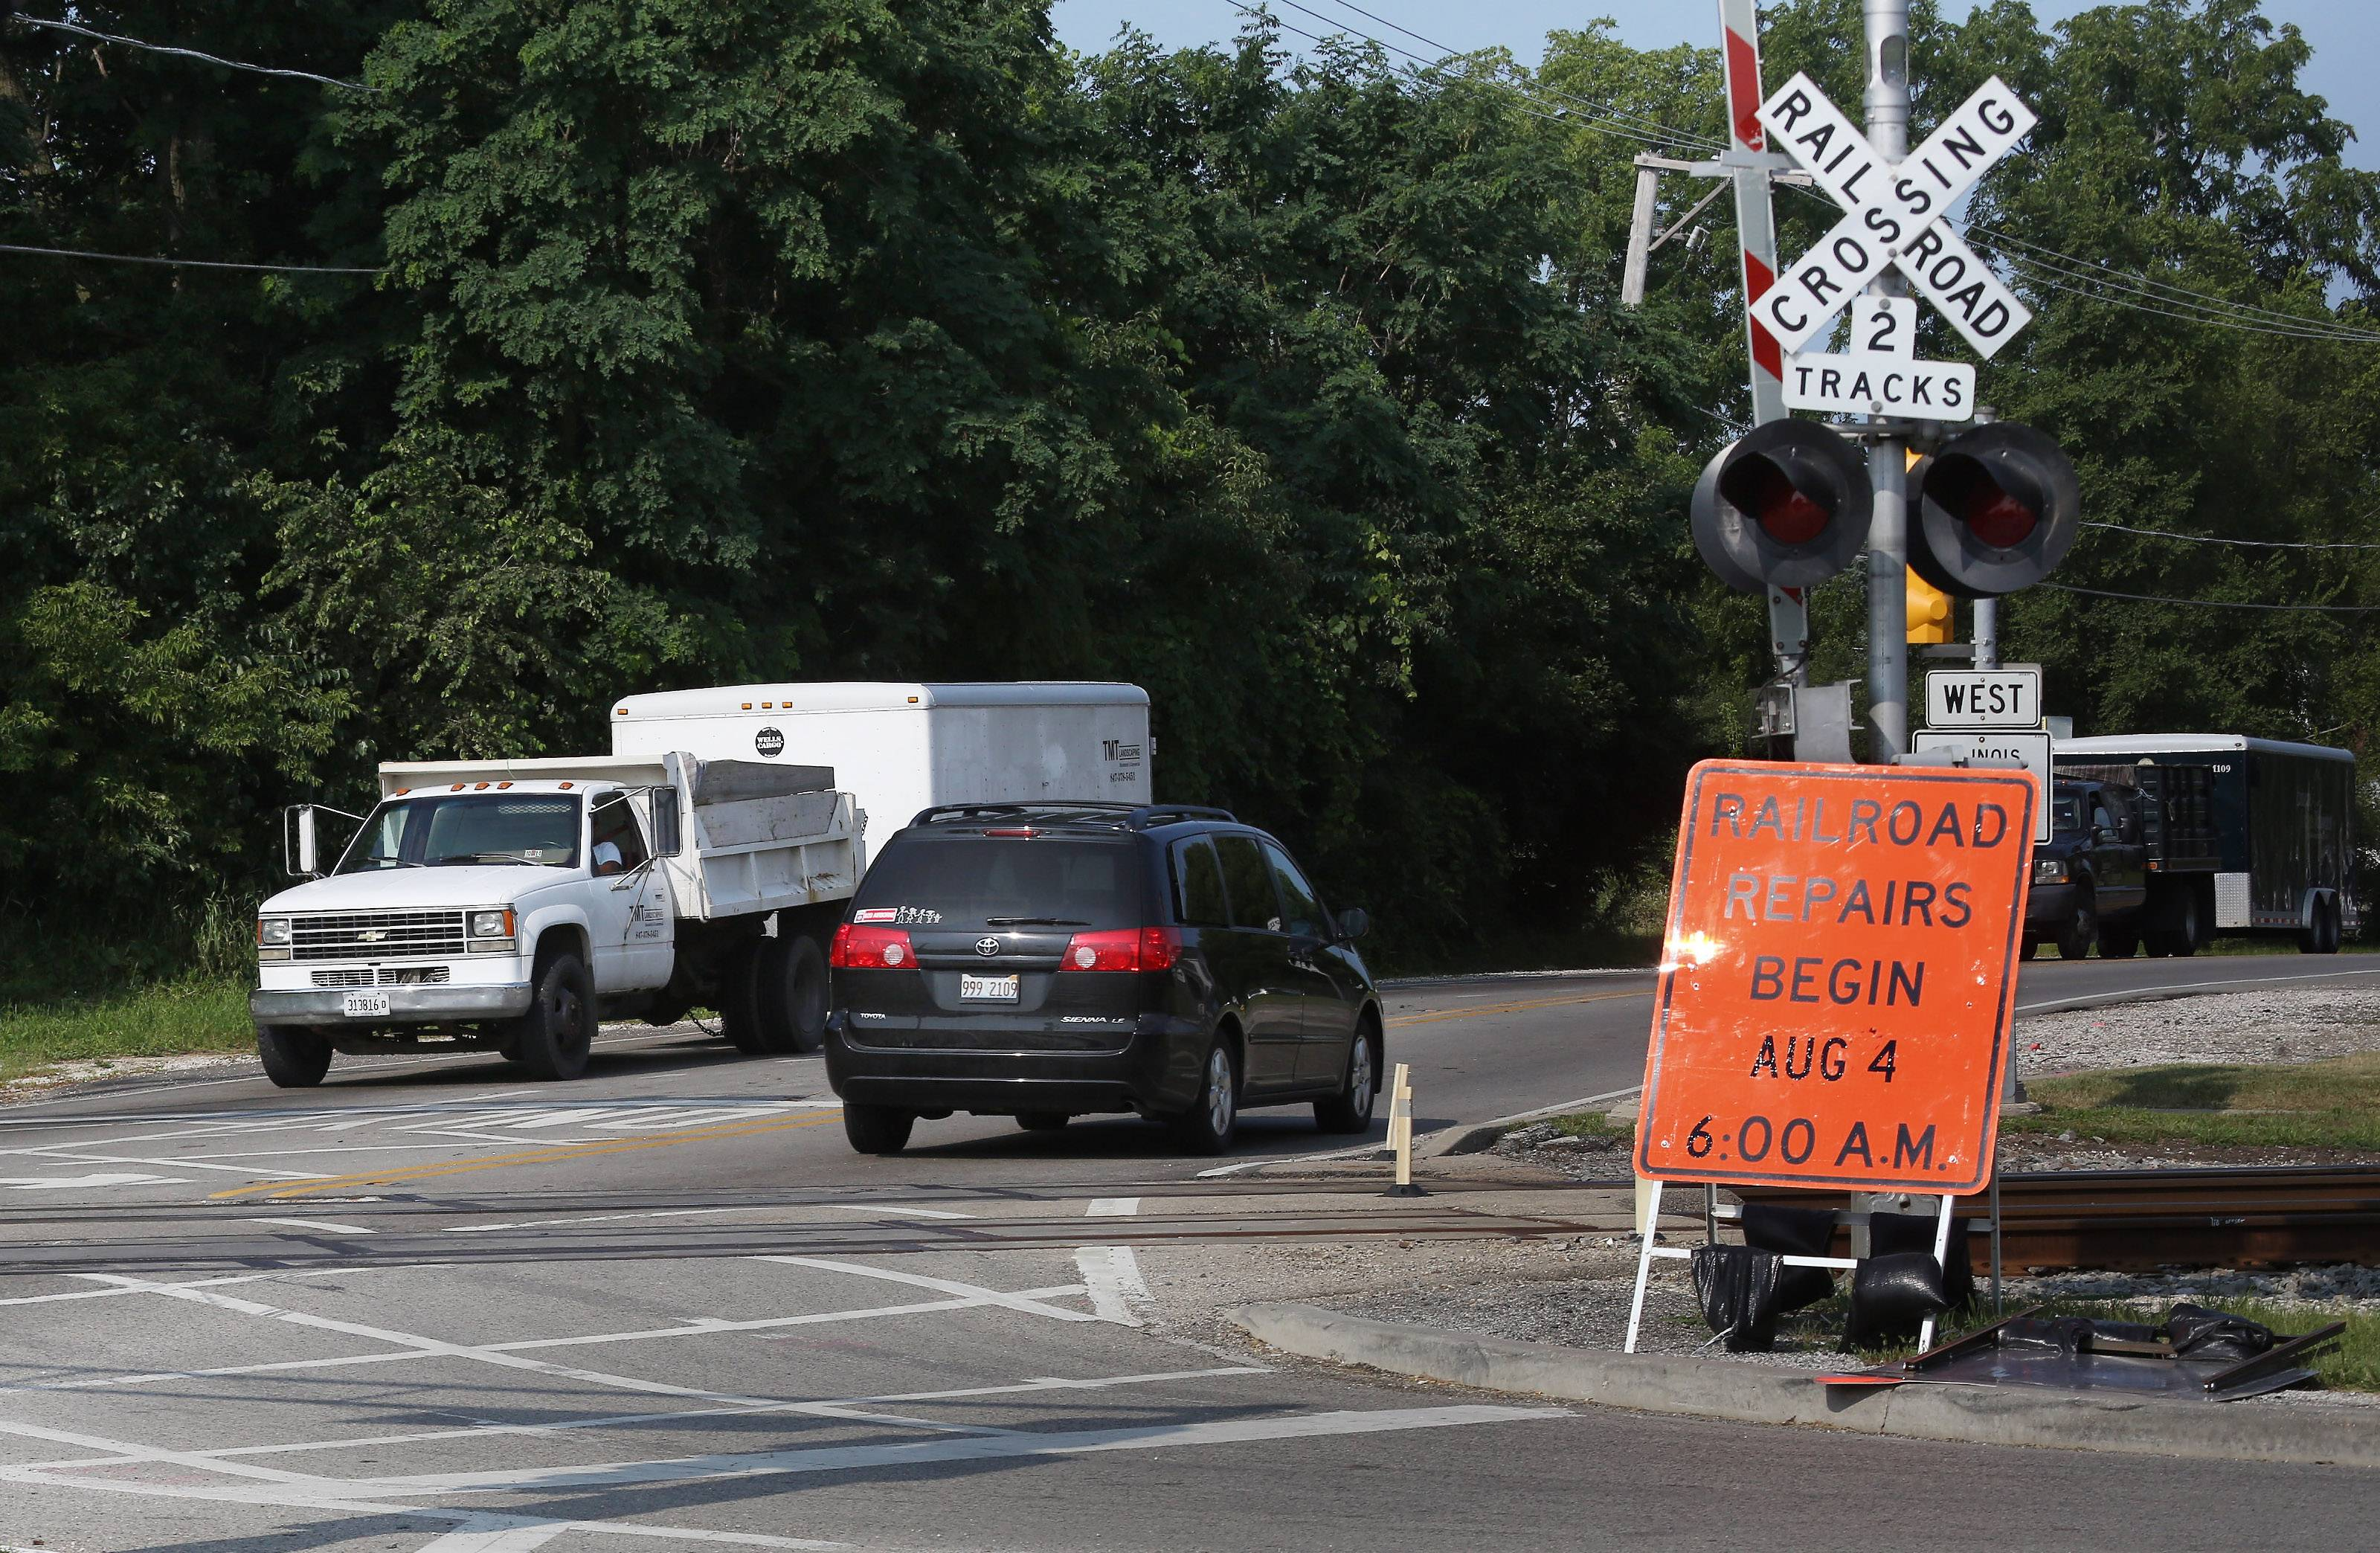 Grayslake officials don't expect major headaches when Route 120 west of Route 83 closes for 10 days beginning Monday for railroad crossing repairs, but travel is expected to be disrupted.